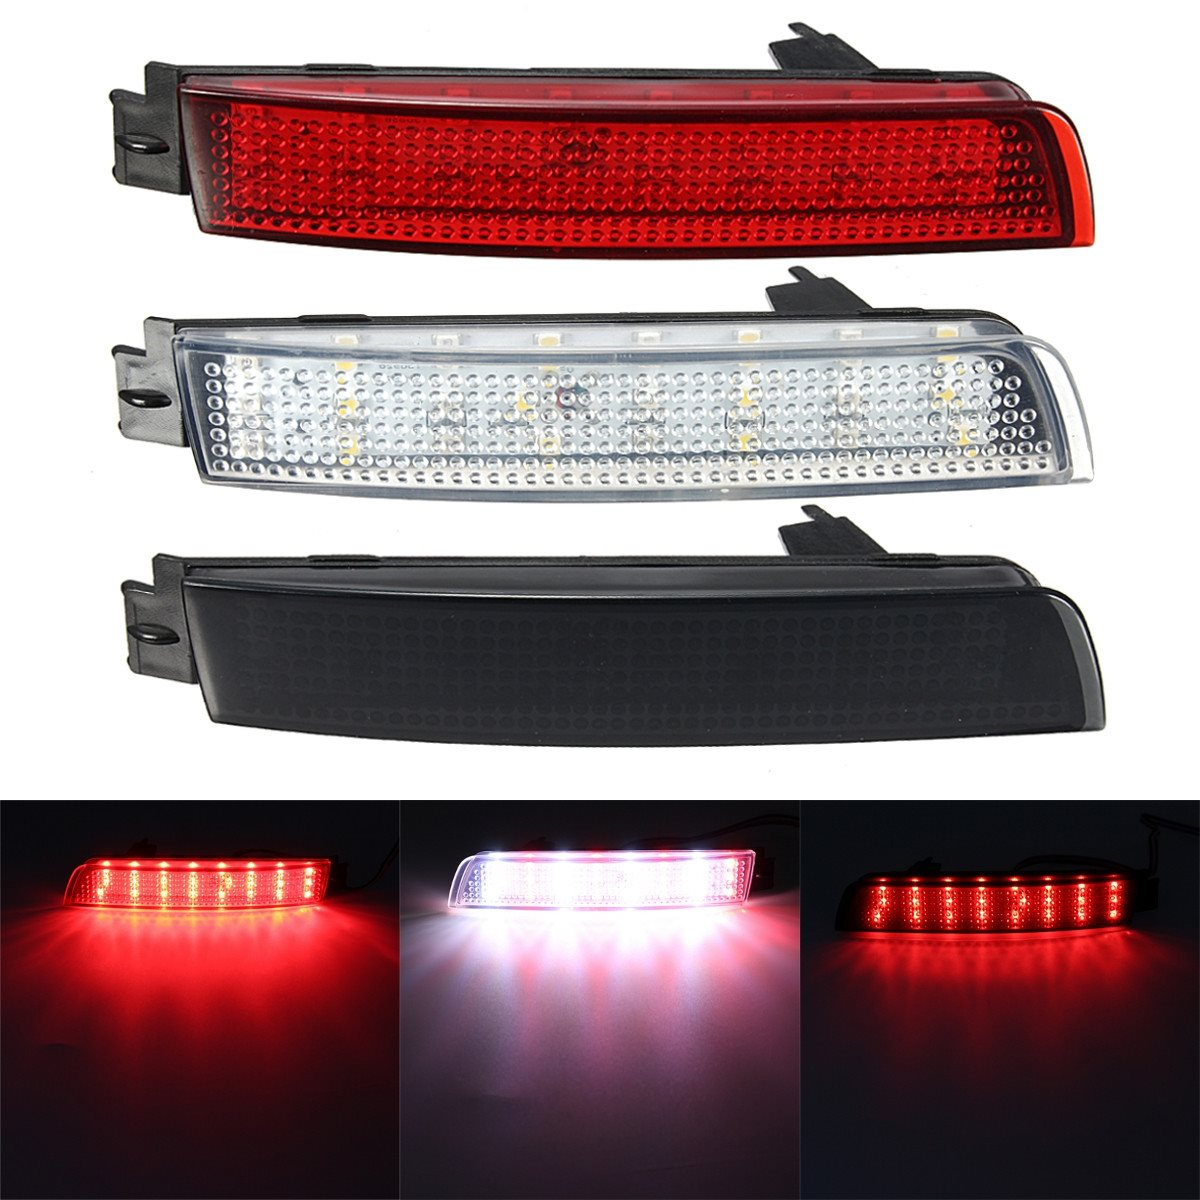 Abs Chrome Rear Tail Light Lamp Cover Trim Taillight Cover For Toyota Rav4 2006 2007 2008 2009 2010 2011 2012 To Rank First Among Similar Products Travel & Roadway Product